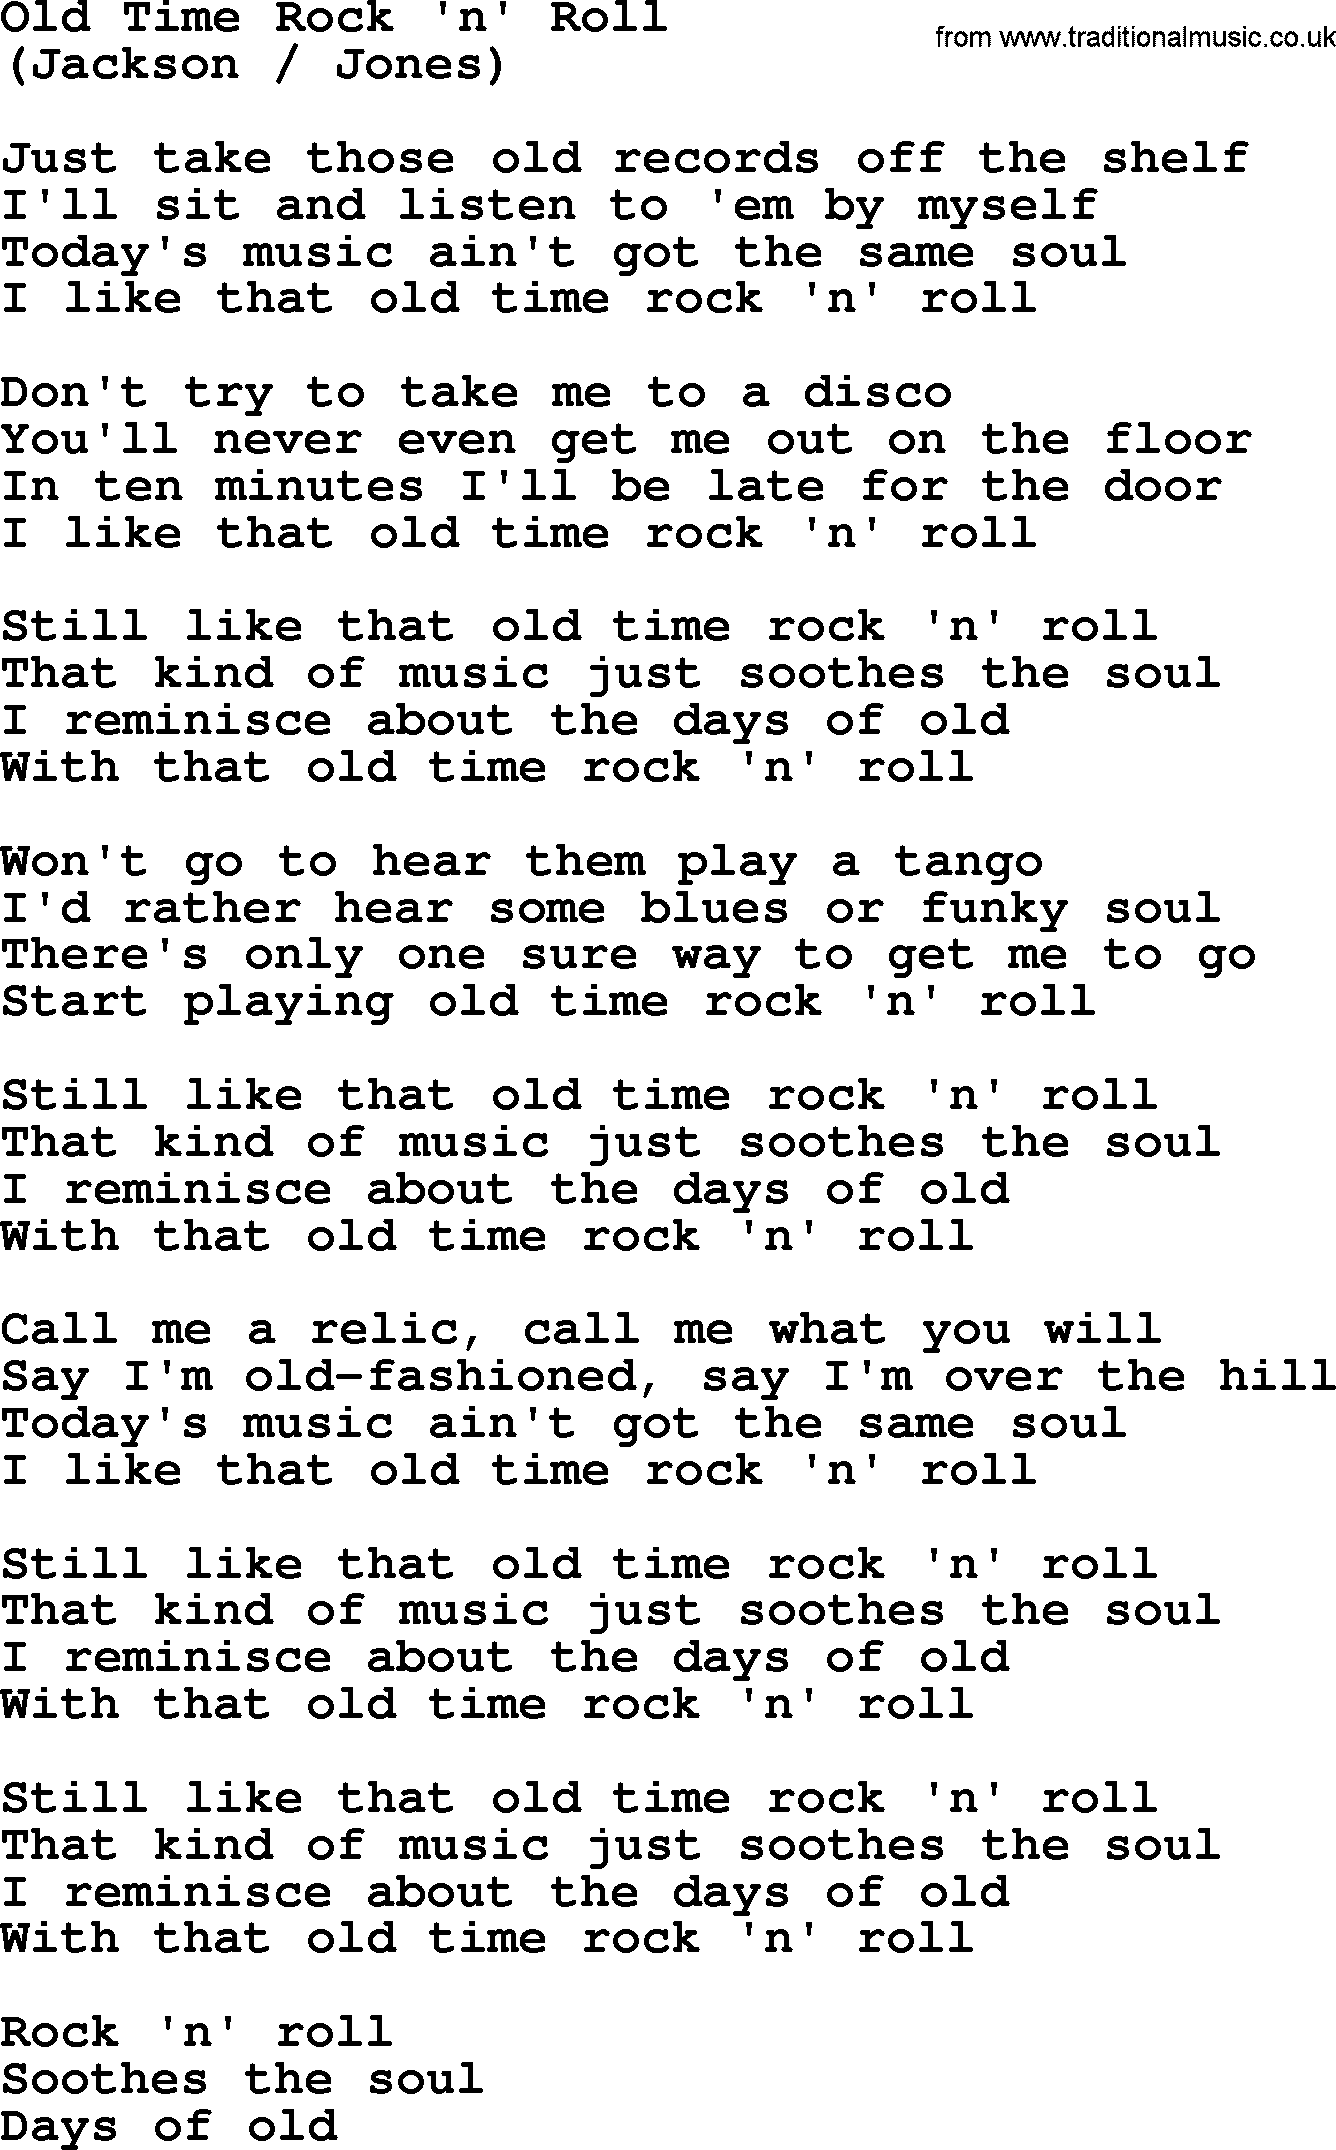 Old Time Rock 'n' Roll, by The Byrds - lyrics with pdf